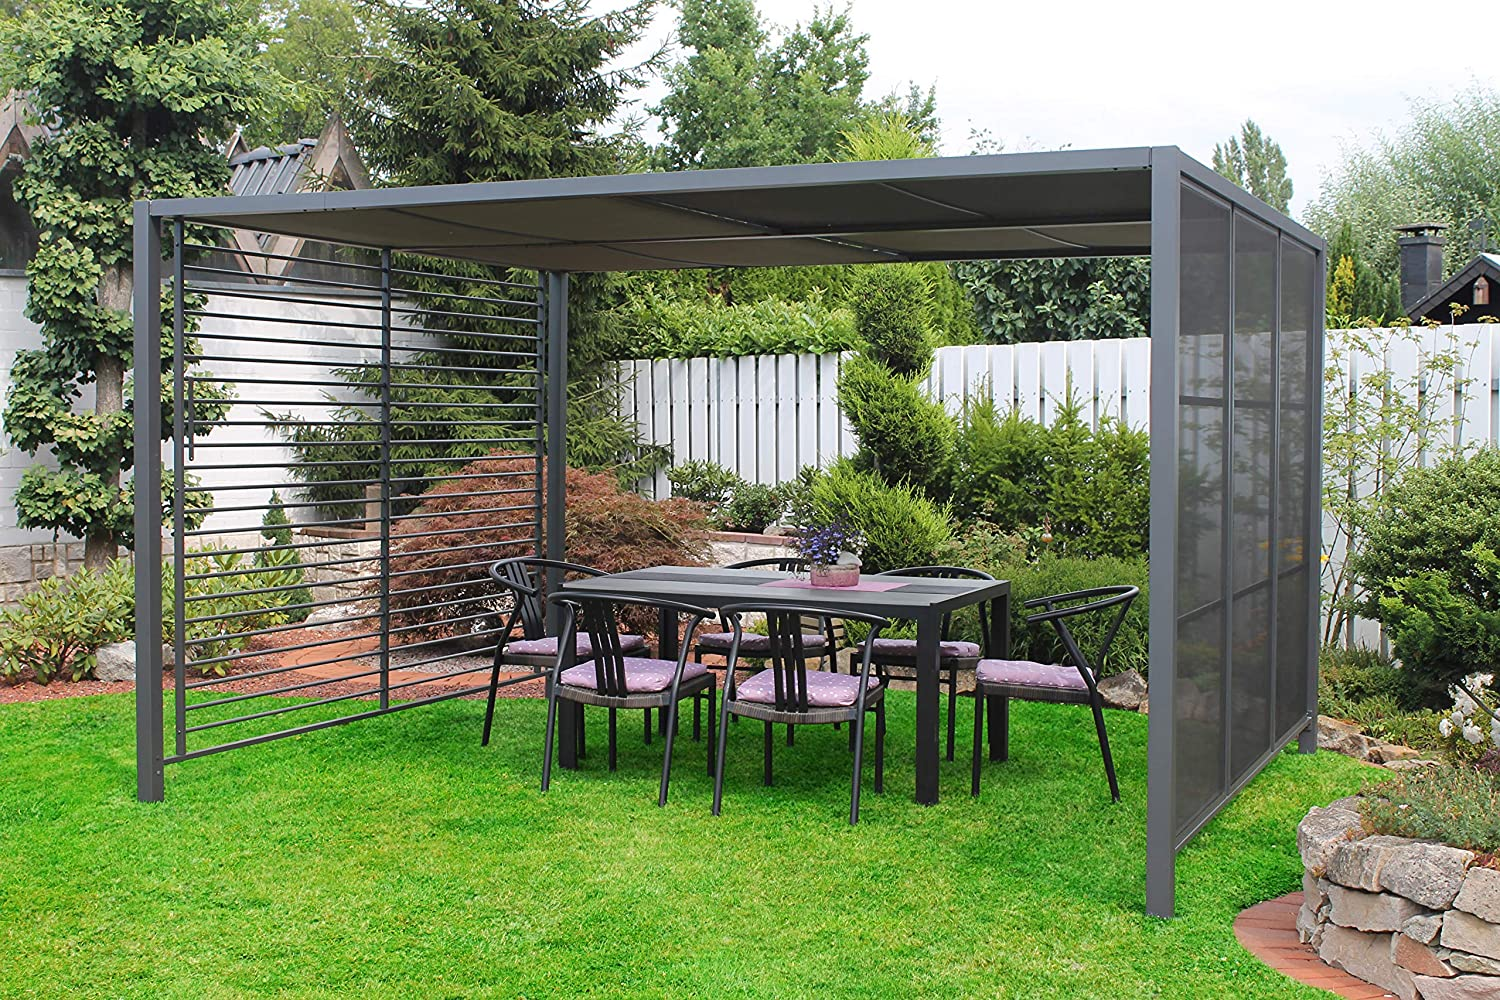 Leco Gaby - Pergola, Color Antracita: Amazon.es: Jardín